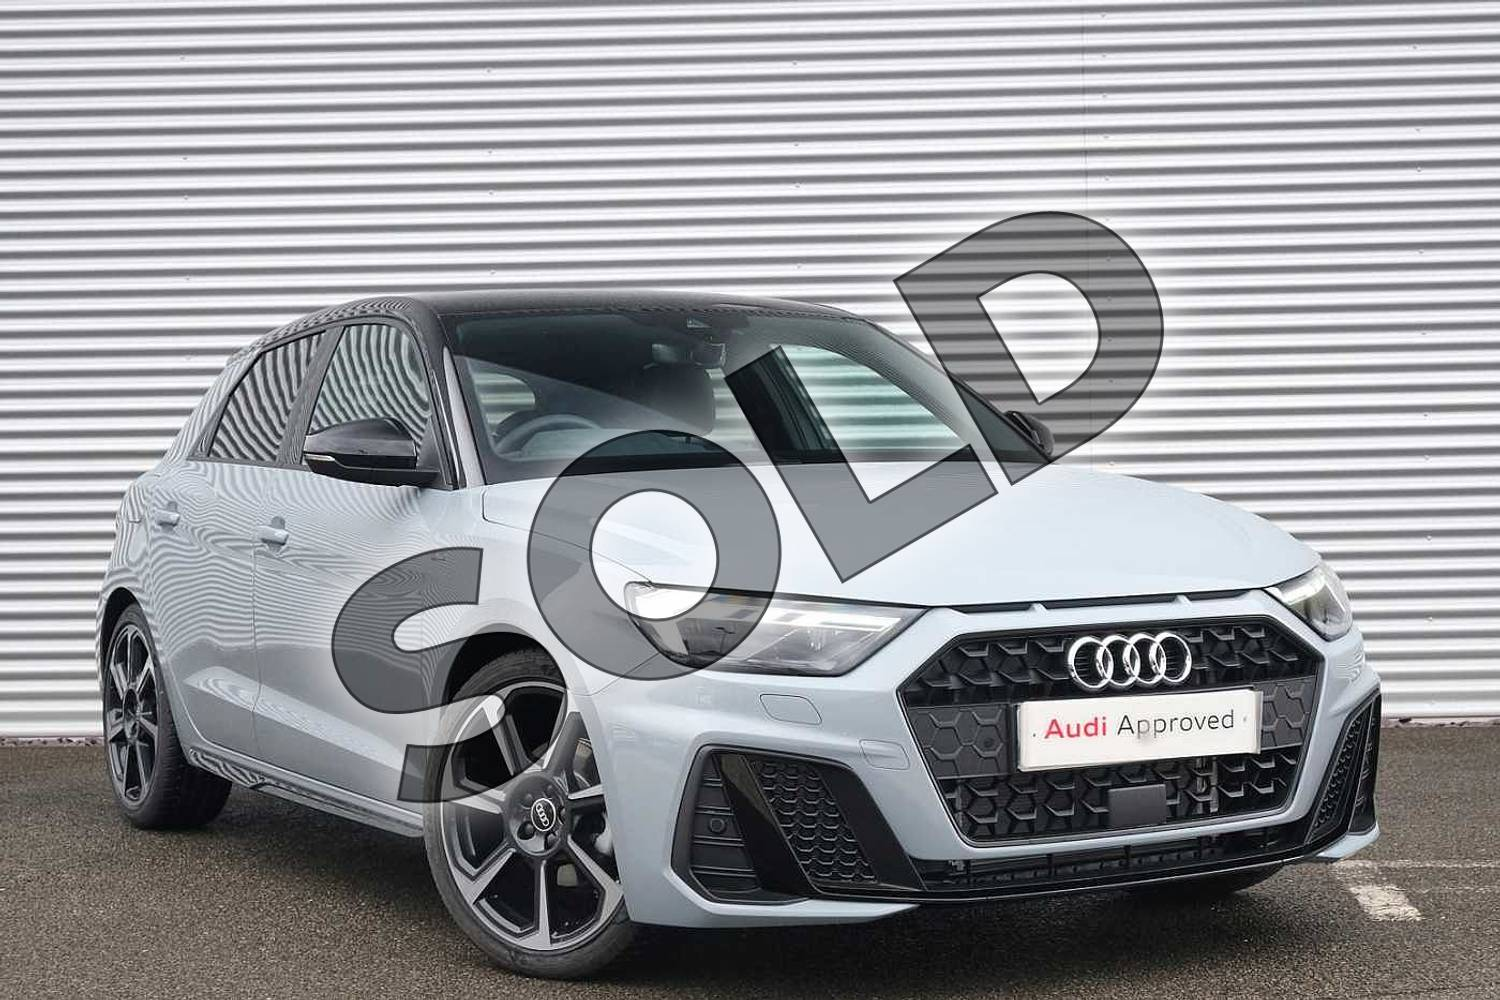 2021 Audi A1 Sportback 35 TFSI Black Edition 5dr S Tronic in Arrow Grey Pearlescent at Coventry Audi